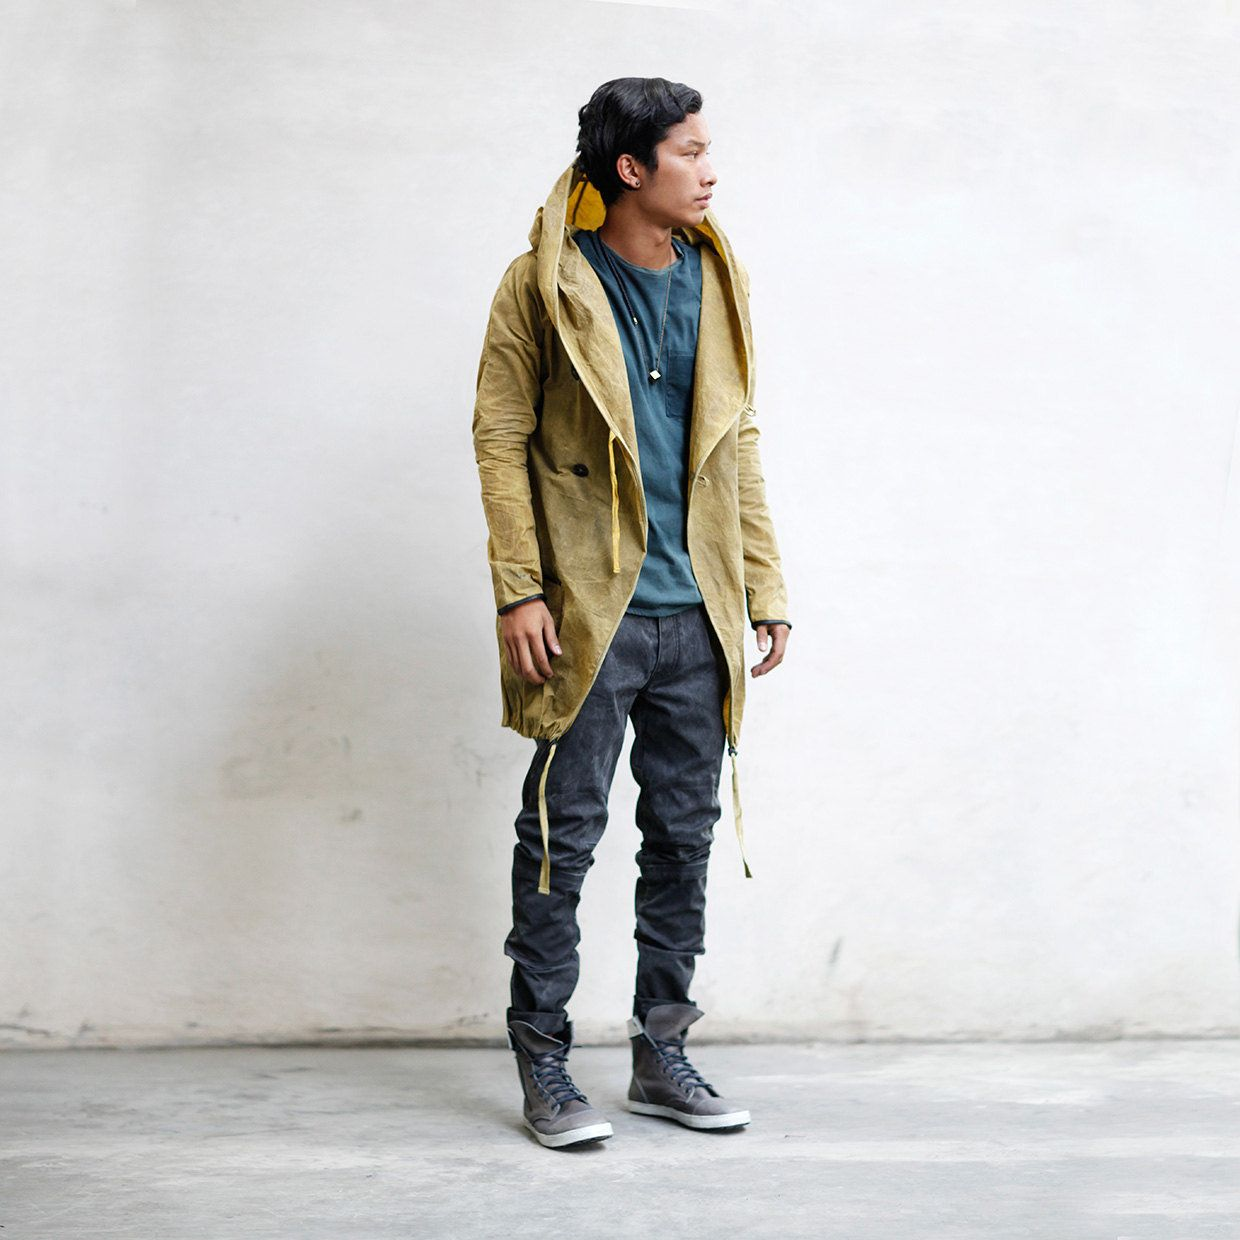 Heathen Clothing, based in Los Angeles, makes a great hand-dyed beeswax trench